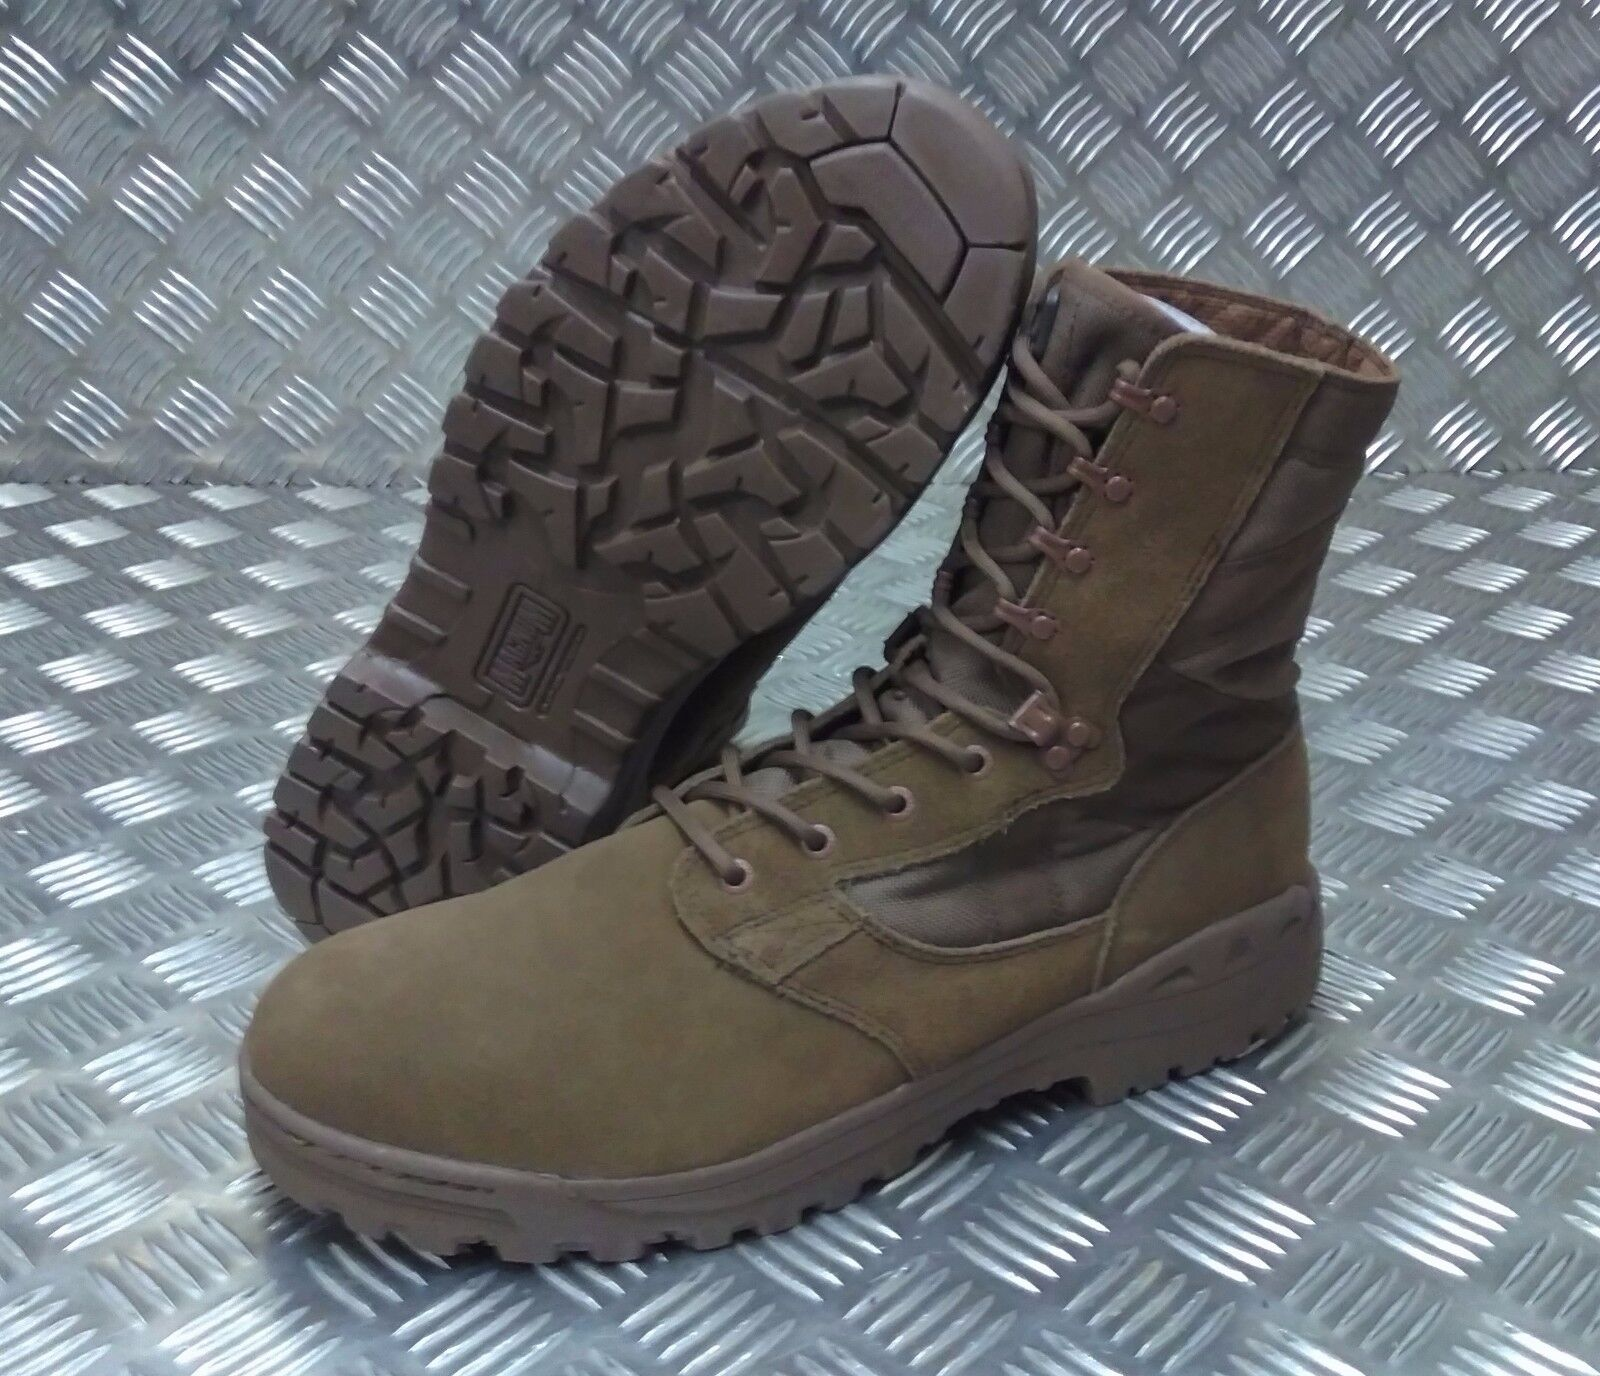 Genuine British Desert Army BROWN Magnum Scorpion Desert British Patrol Assault Boots - NEW 74c74d